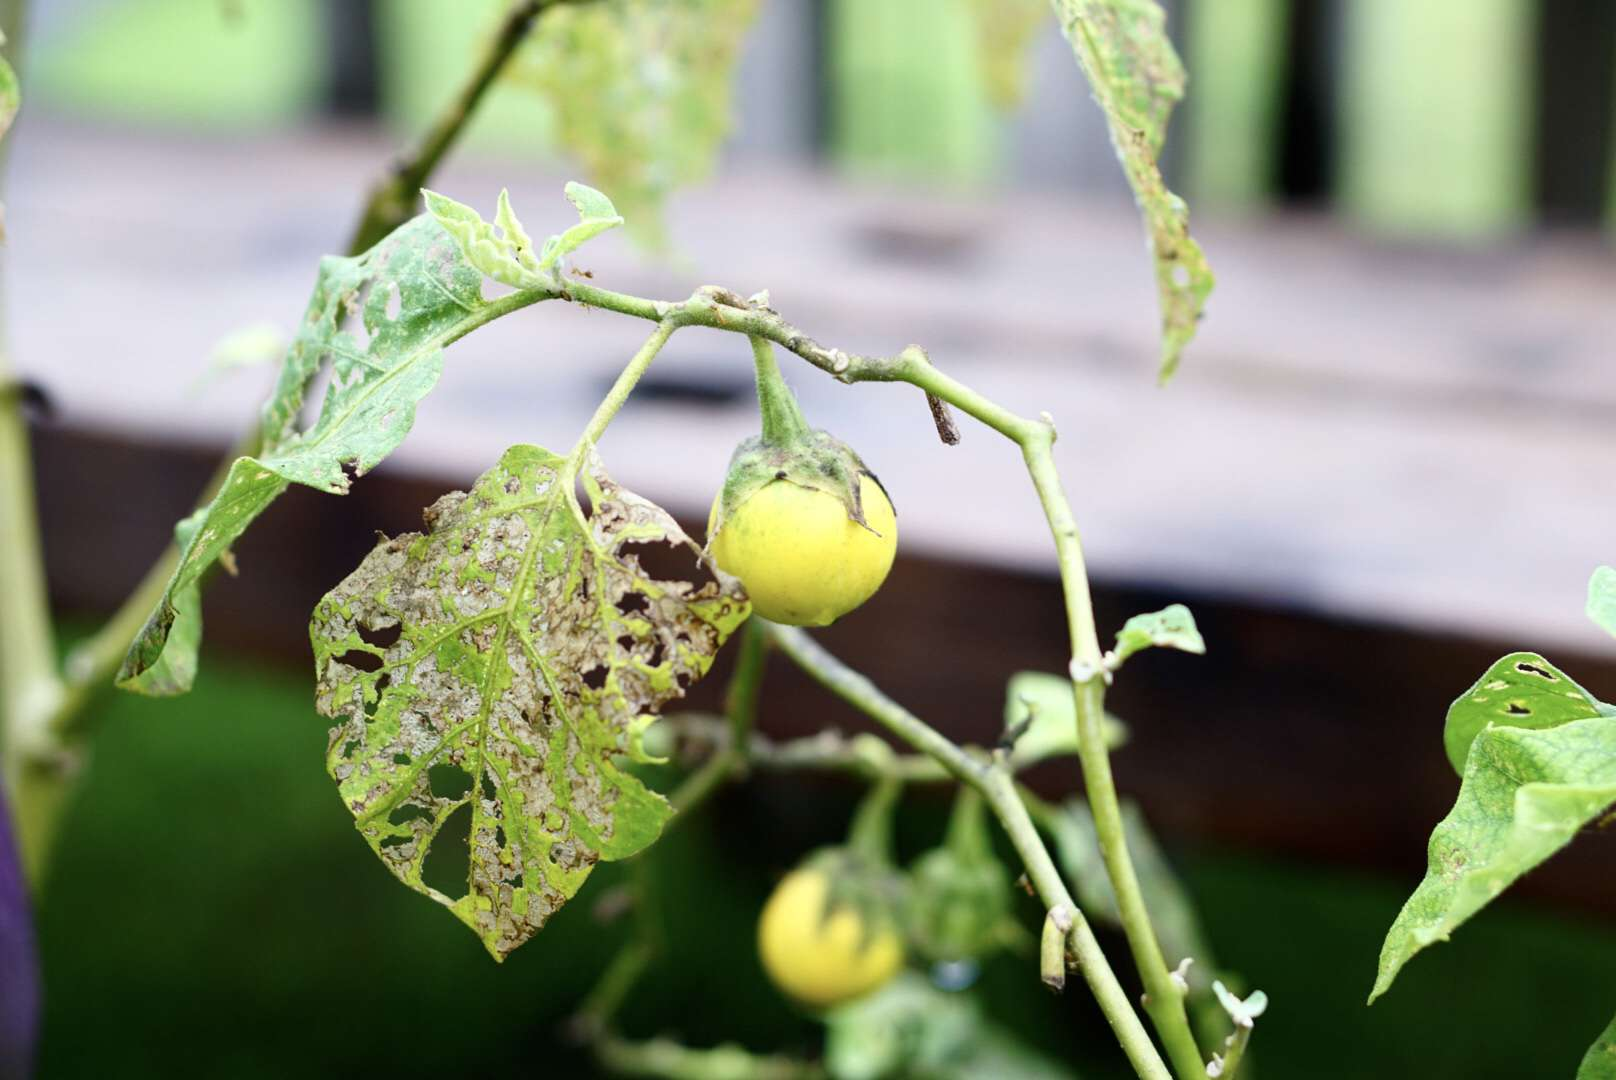 Branch with small yellow vegetable next to pest infected leaves in vegetable garden